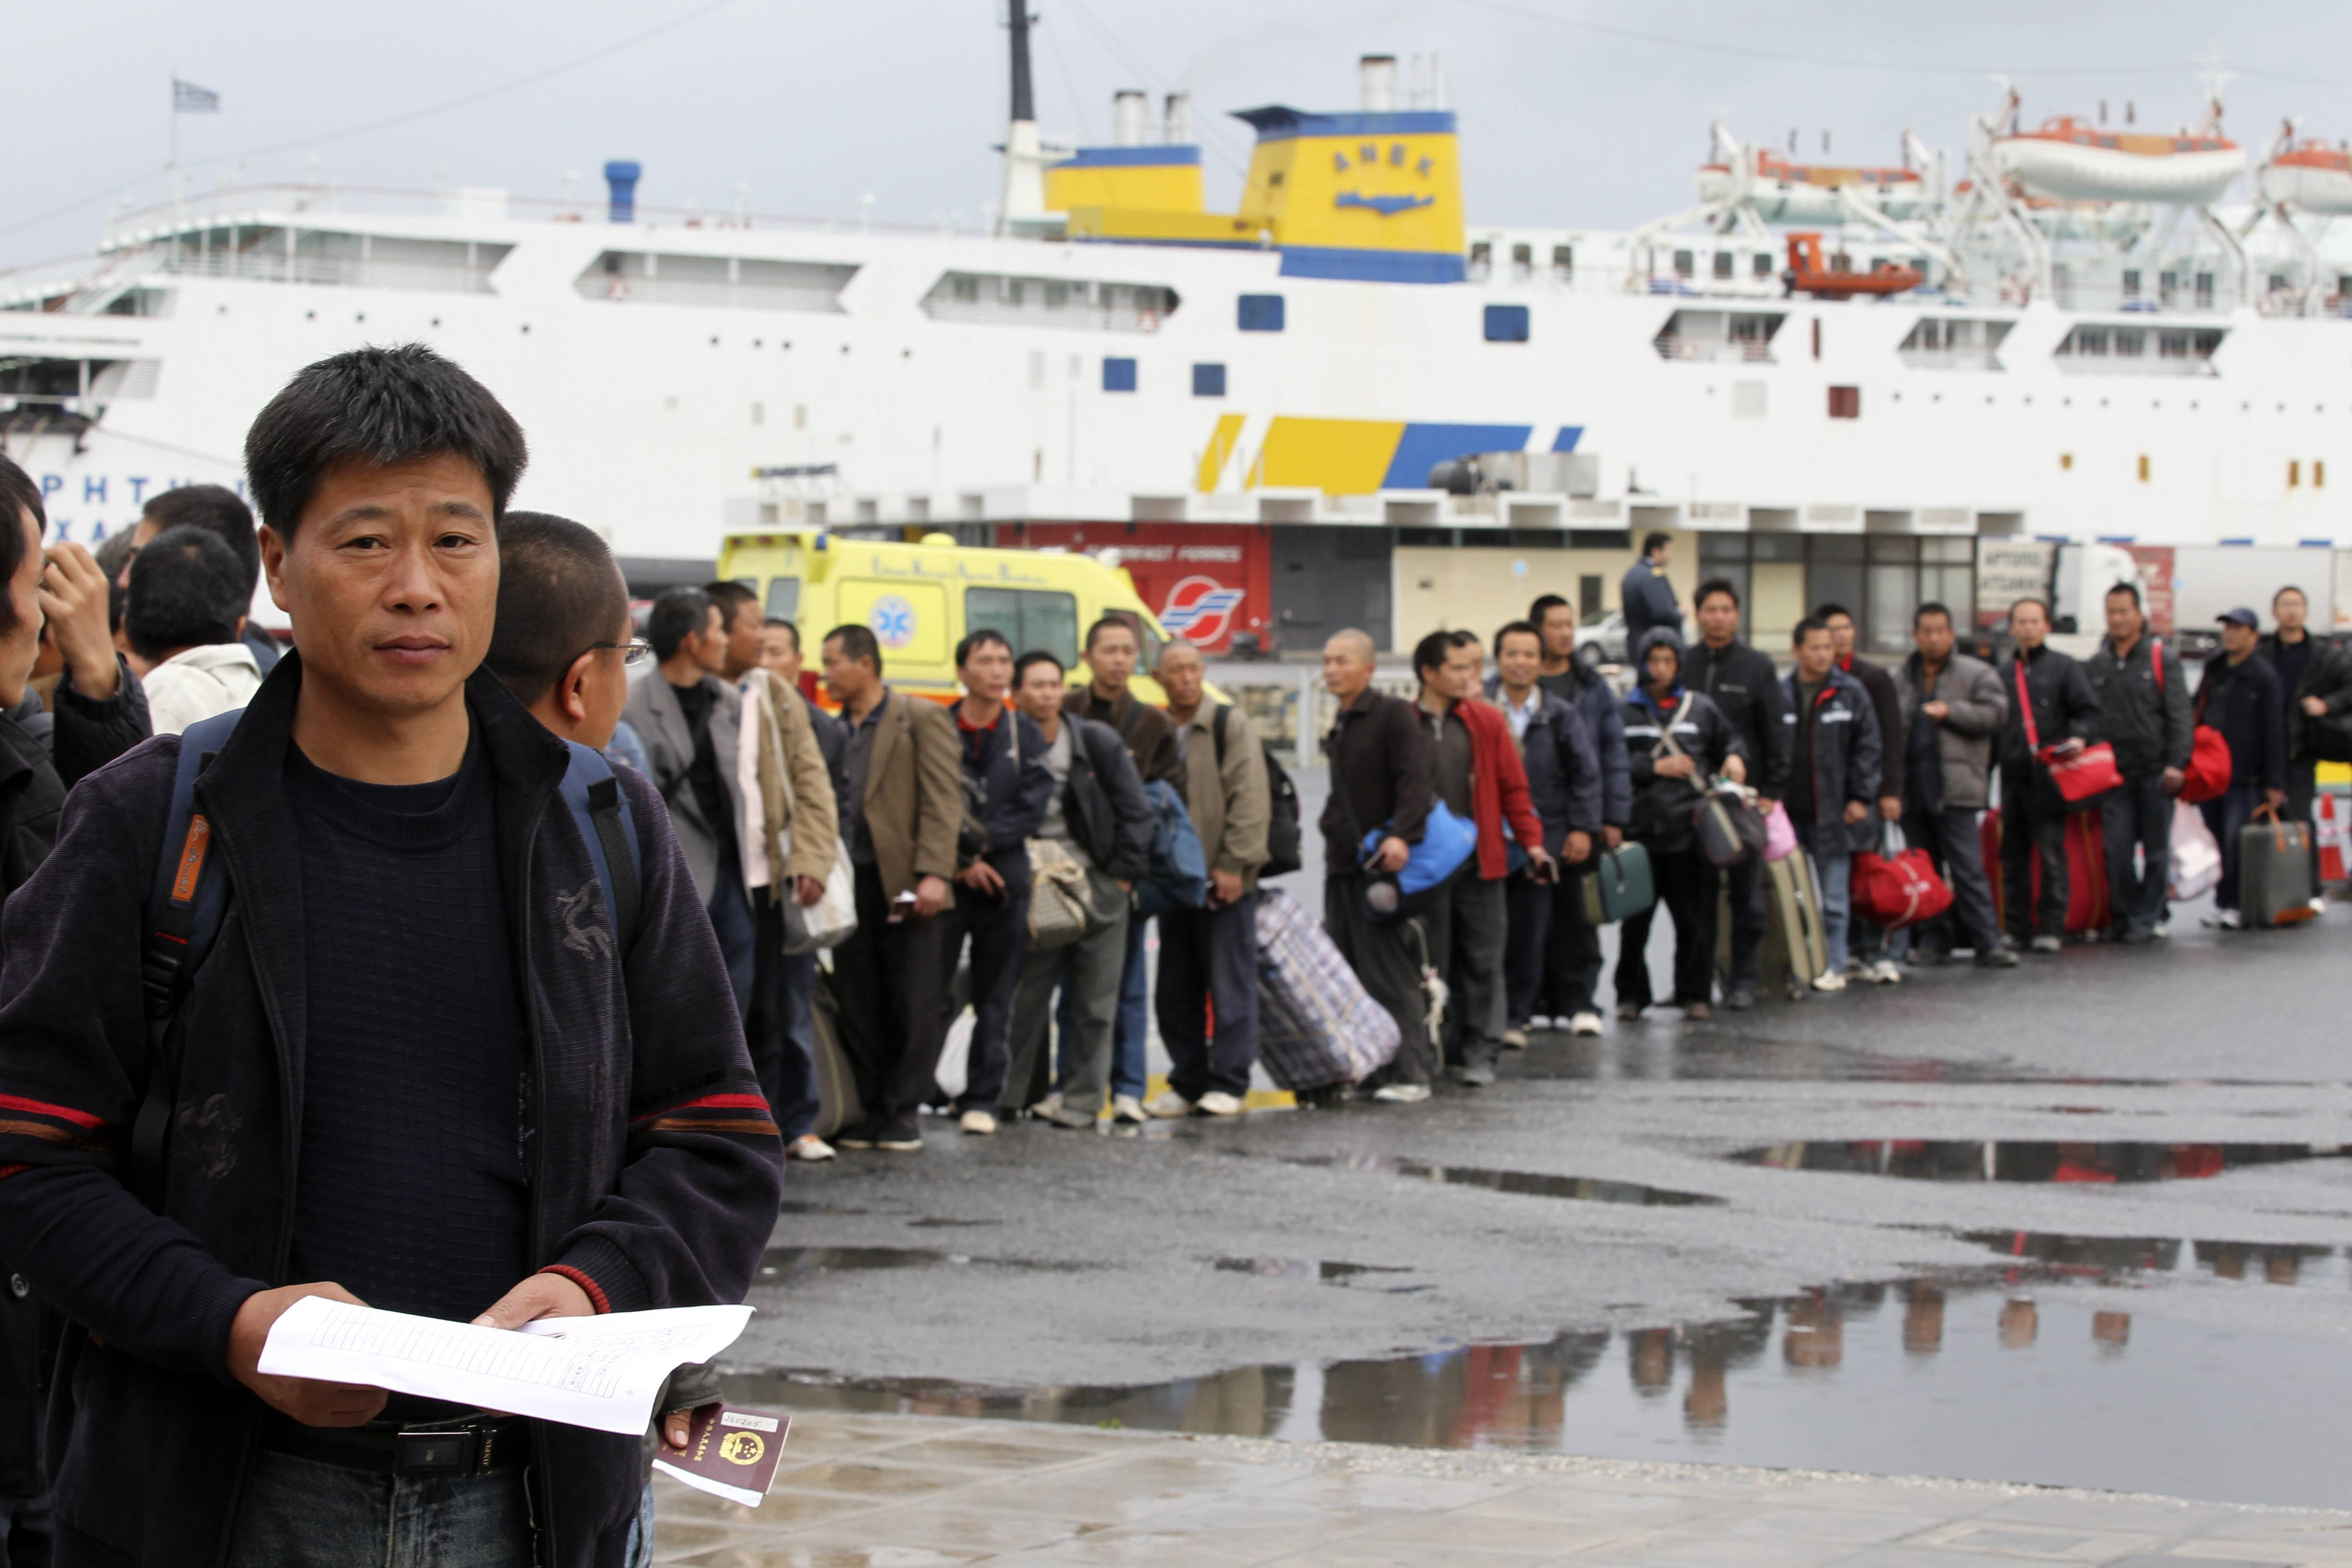 Chinese evacuees wait in a lane to pass the passport control at the port of Iraklio city, on the Greek island of Crete, Thursday.